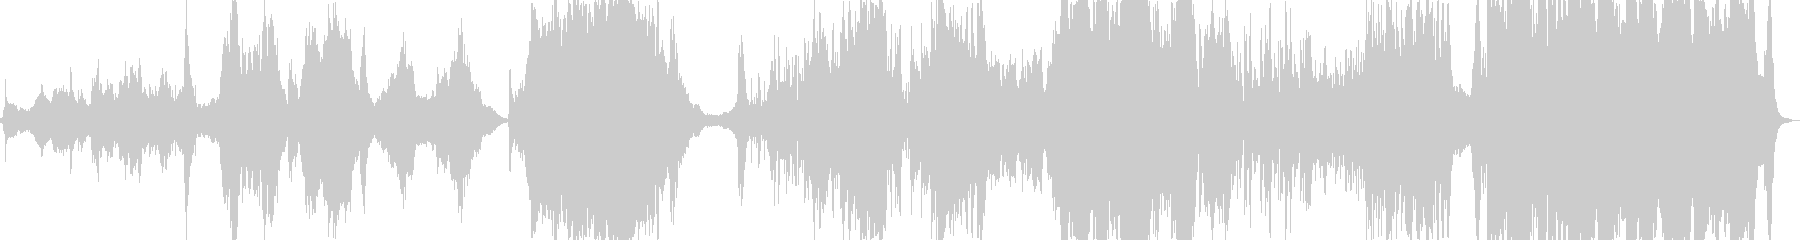 Arabian-style orchestra suite's unreproduced waveform